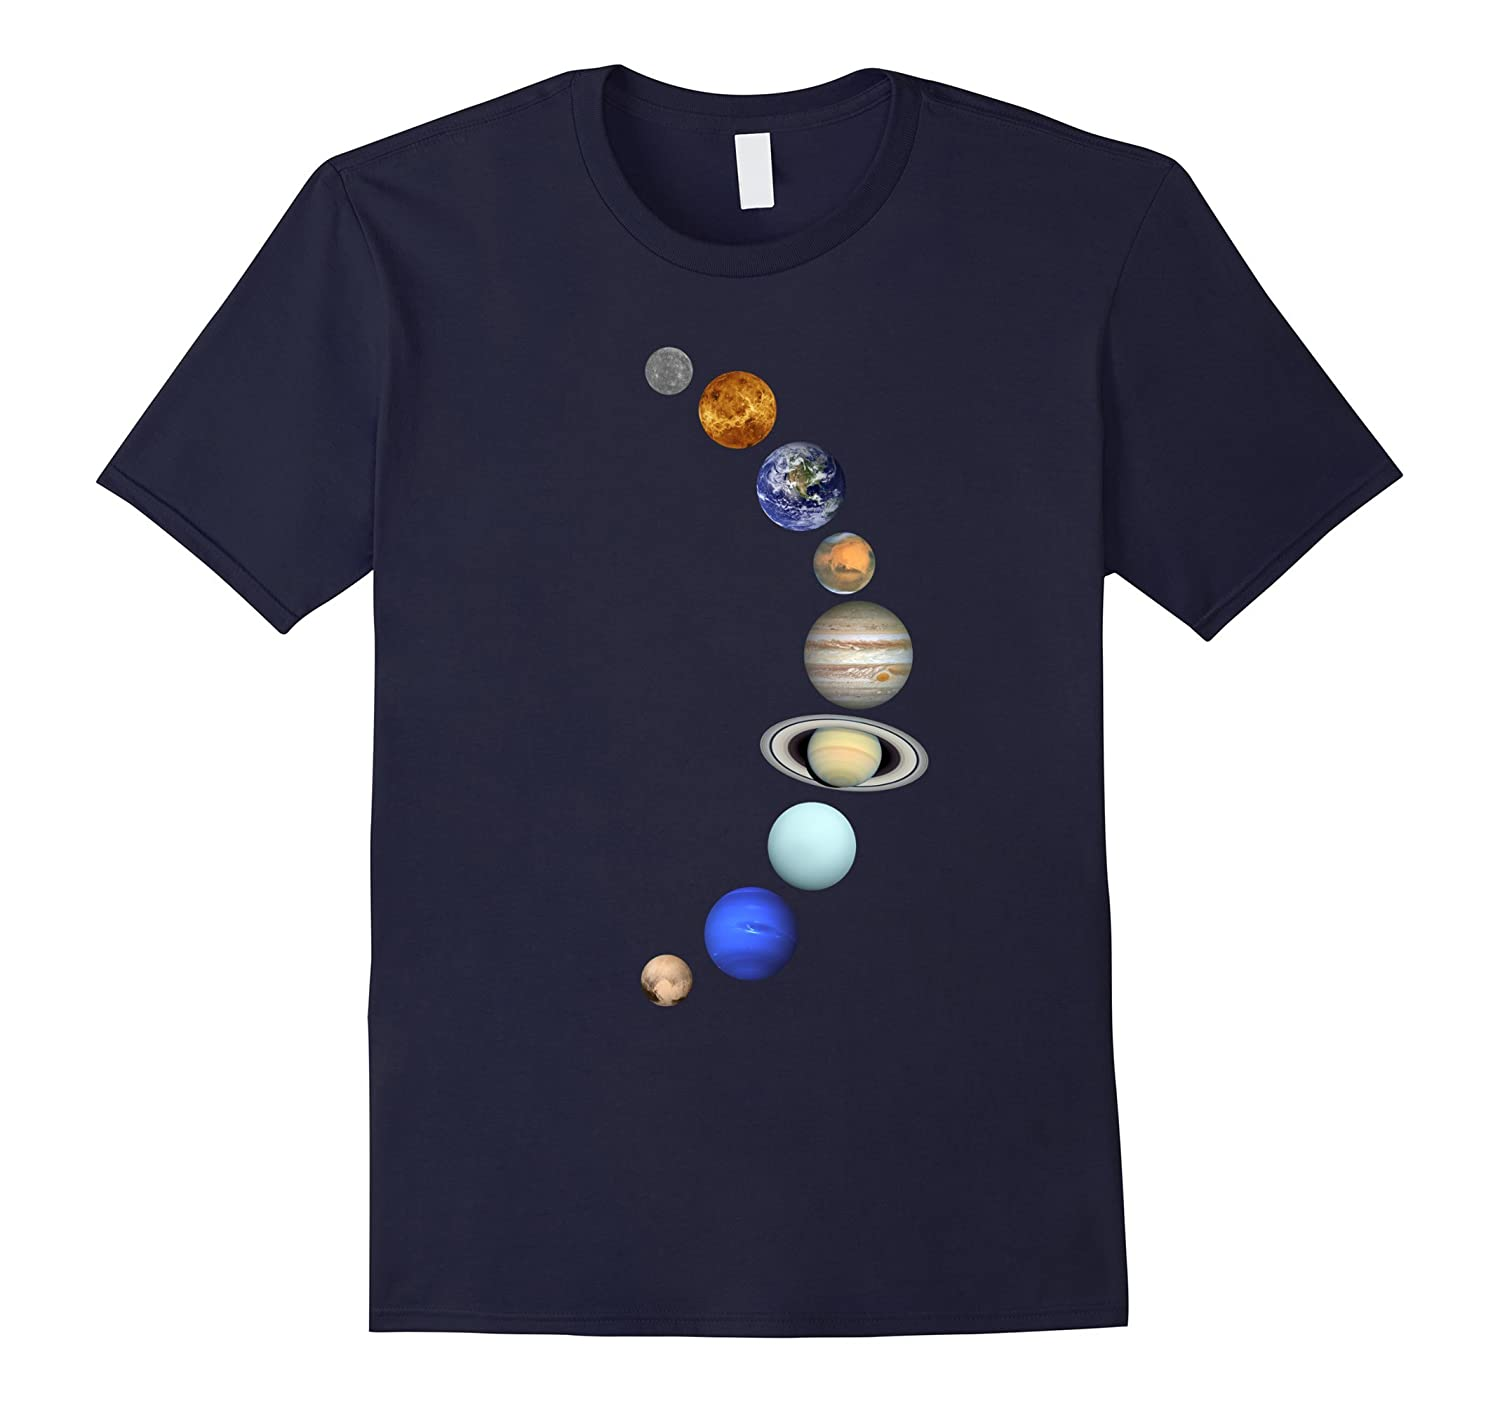 camp solar system t shirts - photo #26